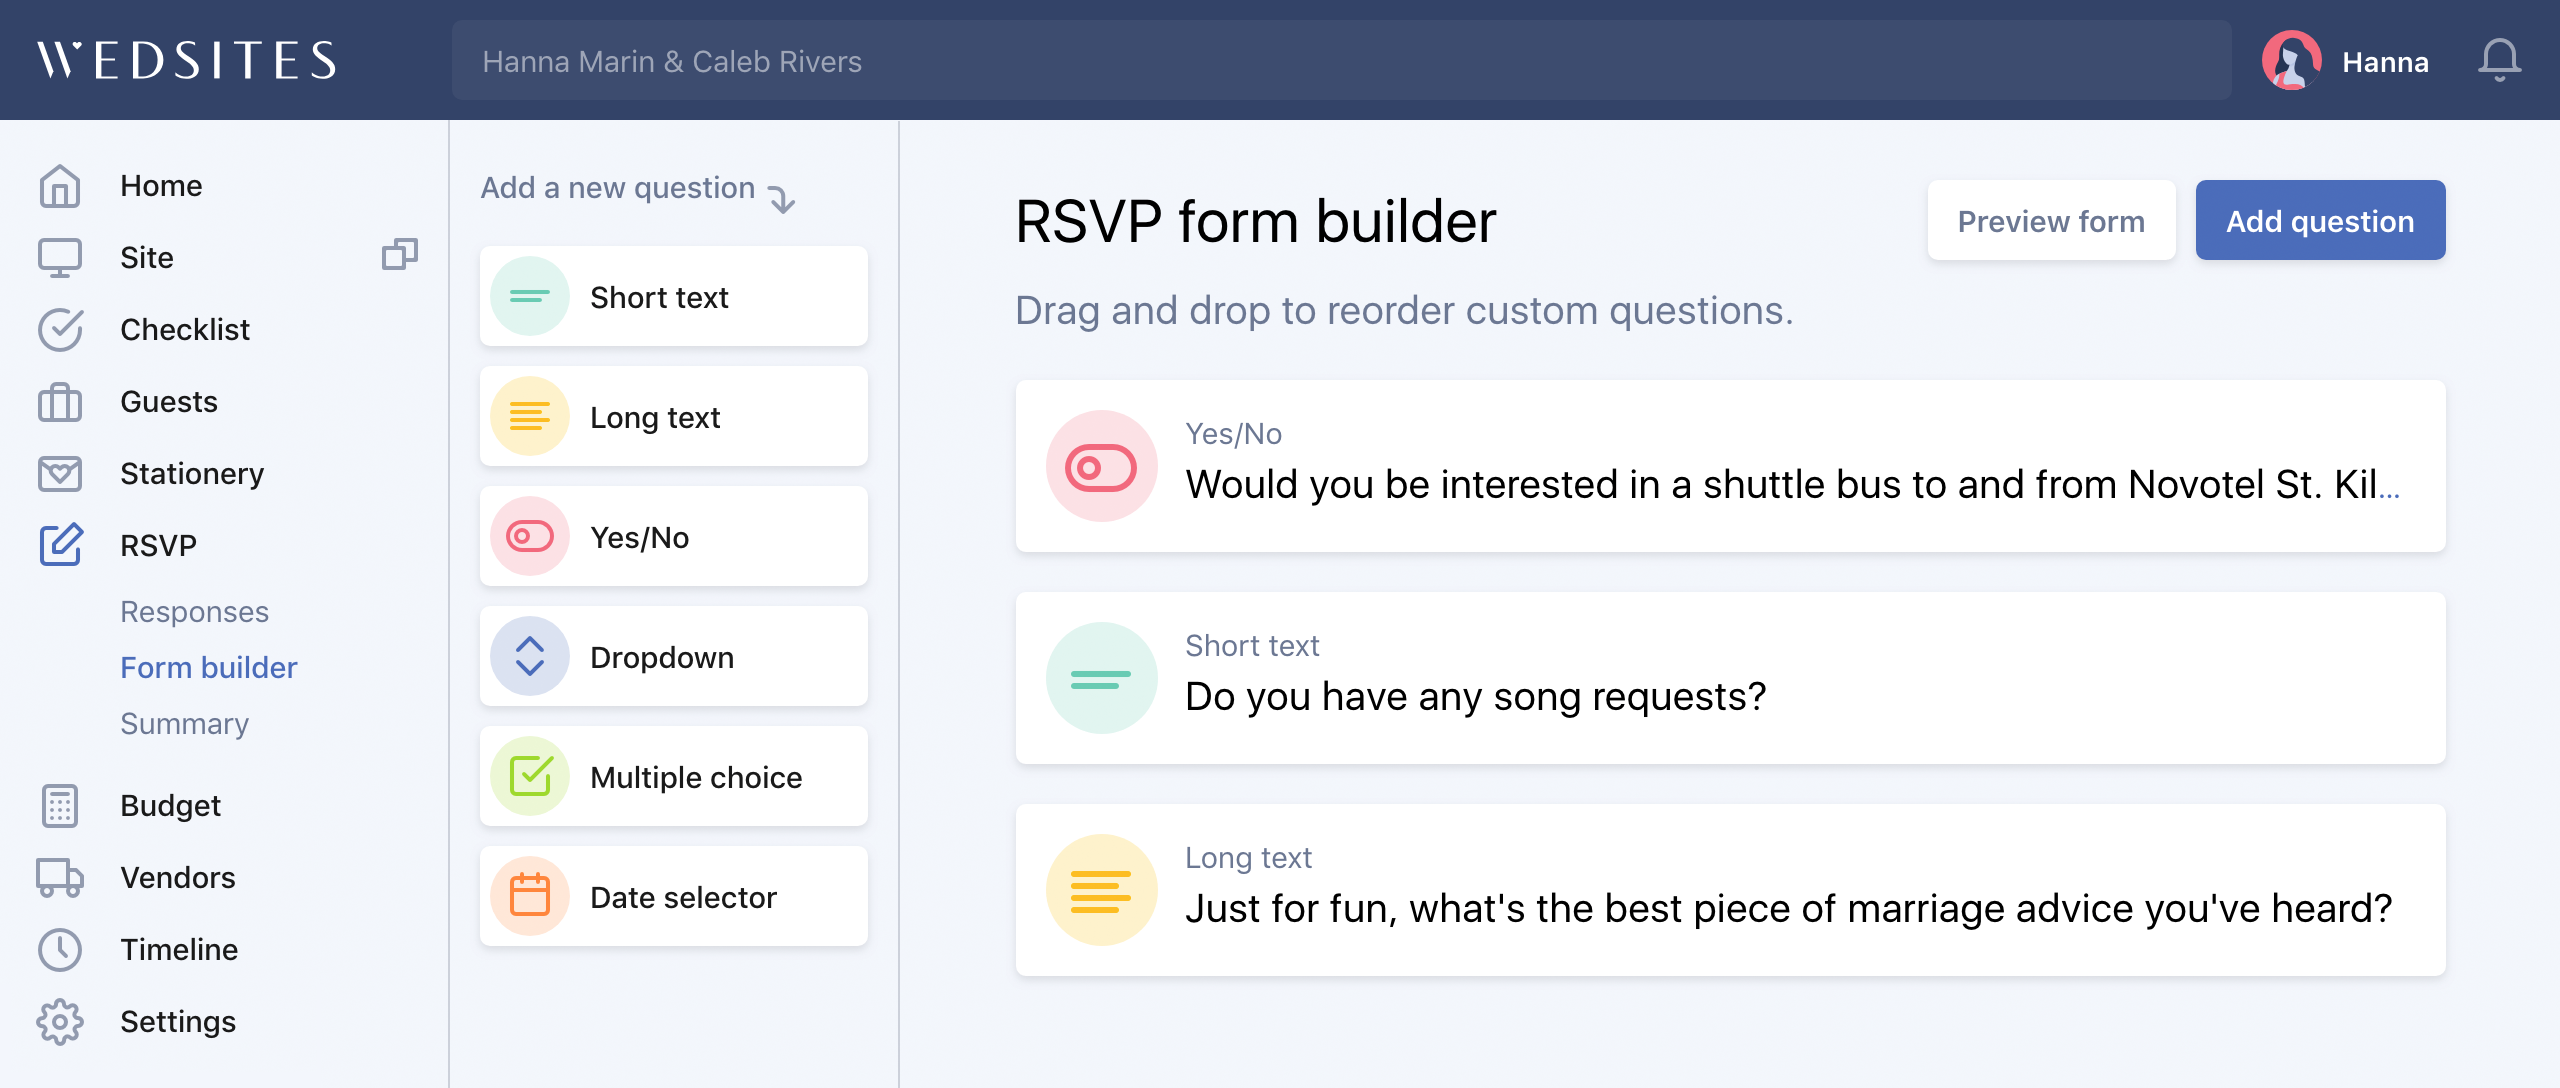 RSVP form builder with custom questions